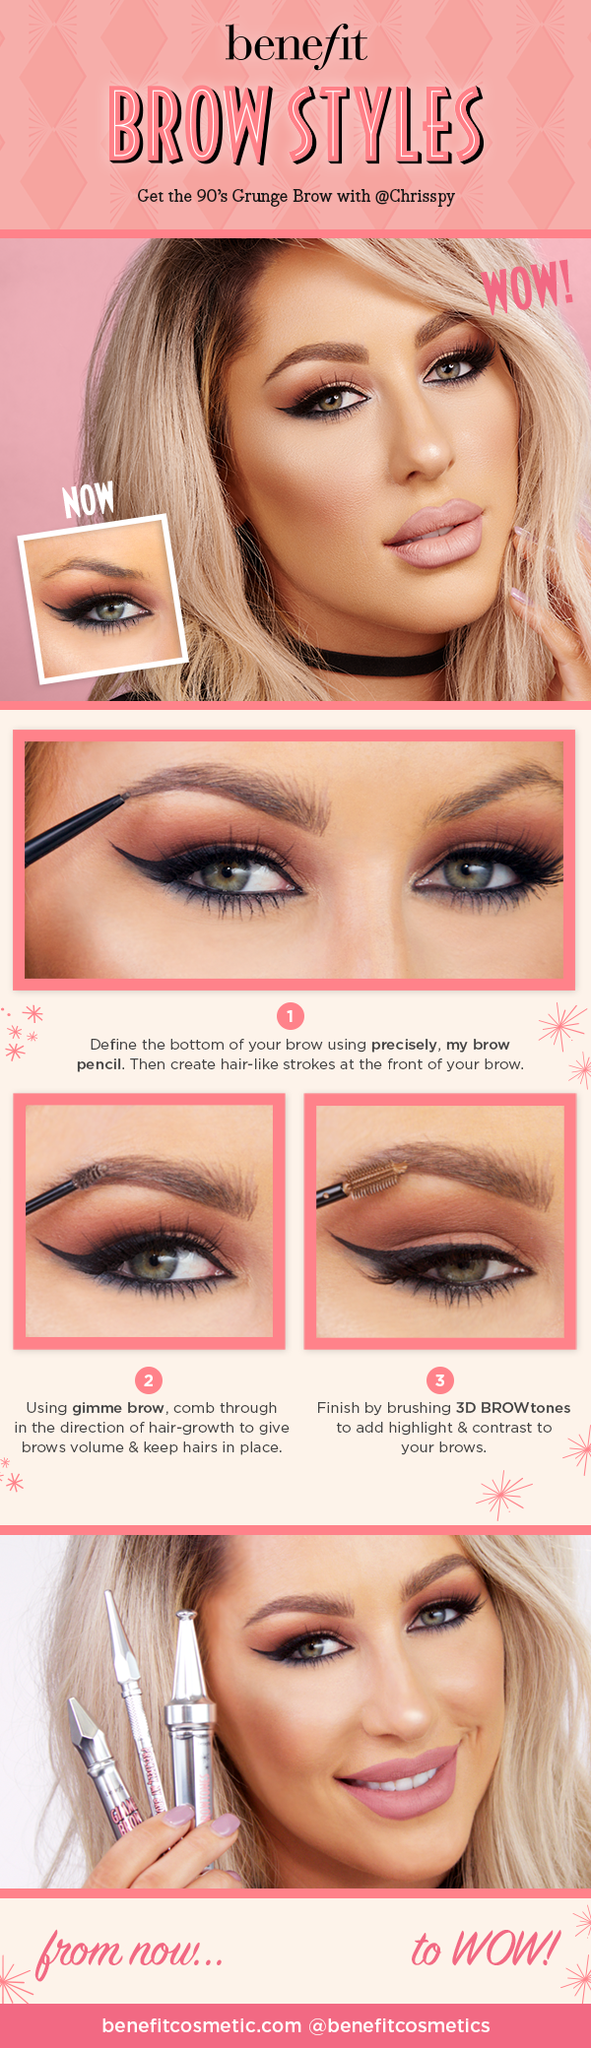 Check Out This Beautiful How To Look From Chrisspy Using Benefit